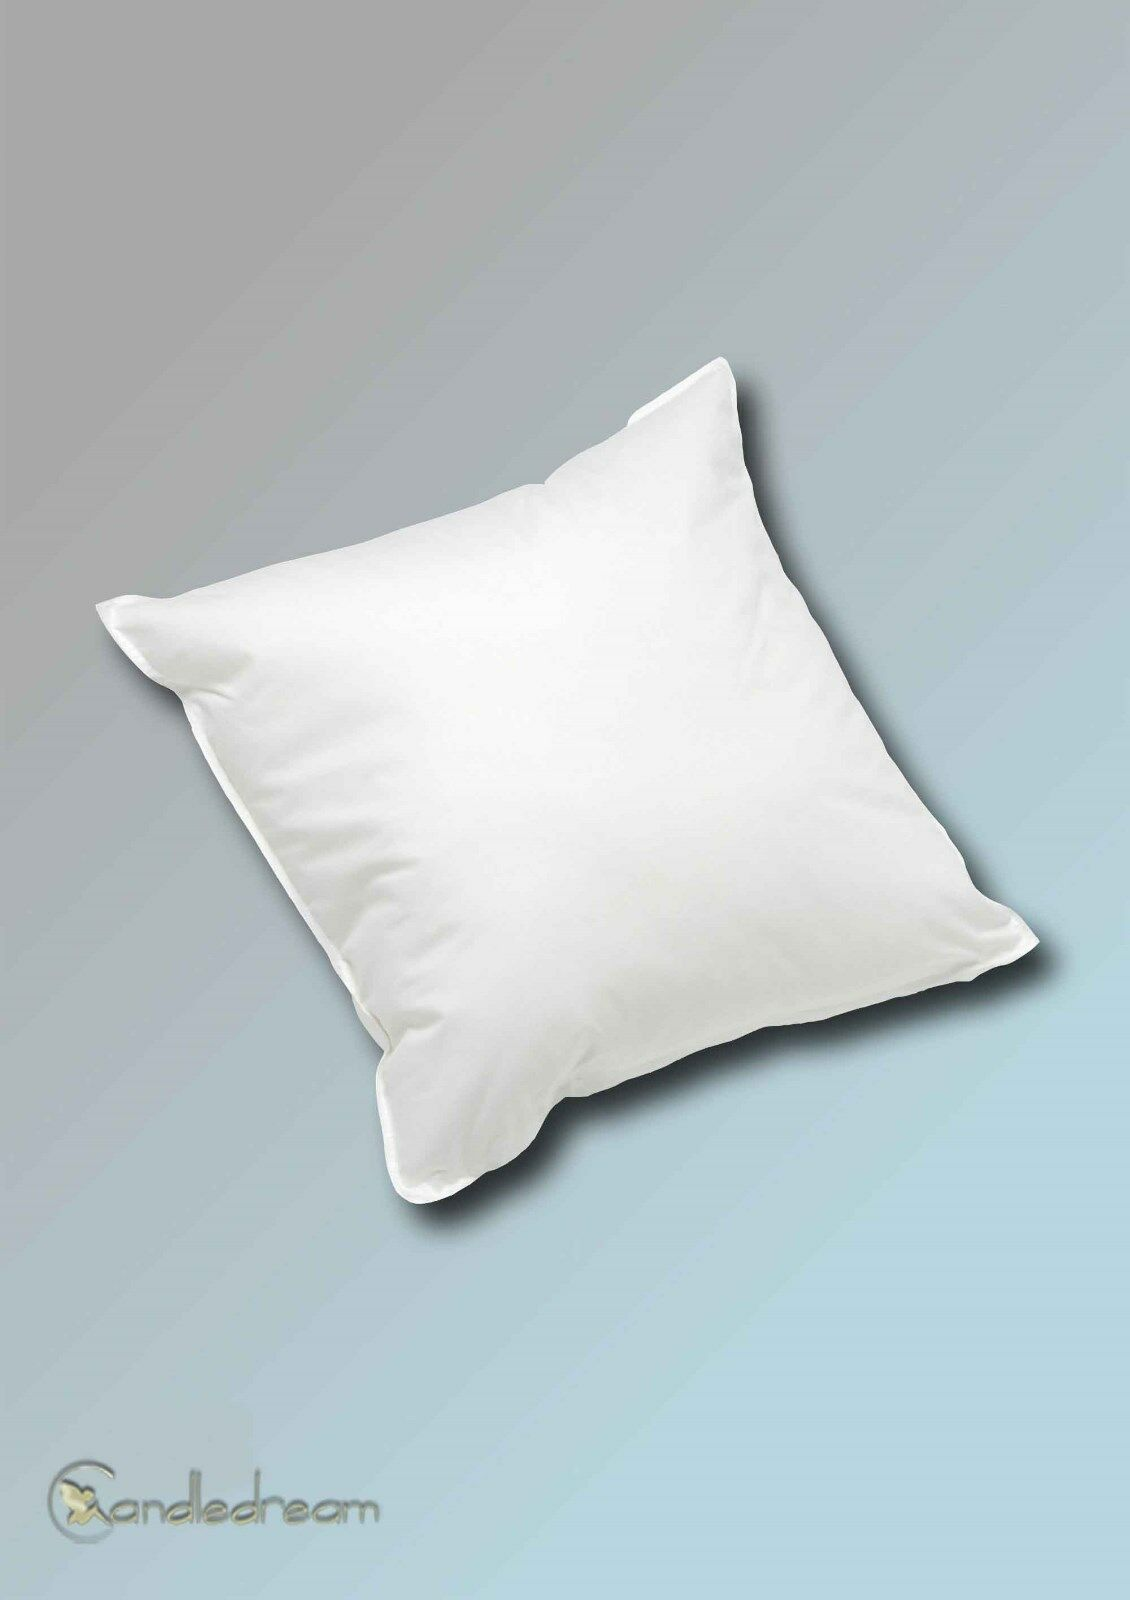 80 x 80 CM Pillows 30%Down 70%Spring Pillow Down Pillow 900 g to 3000 g